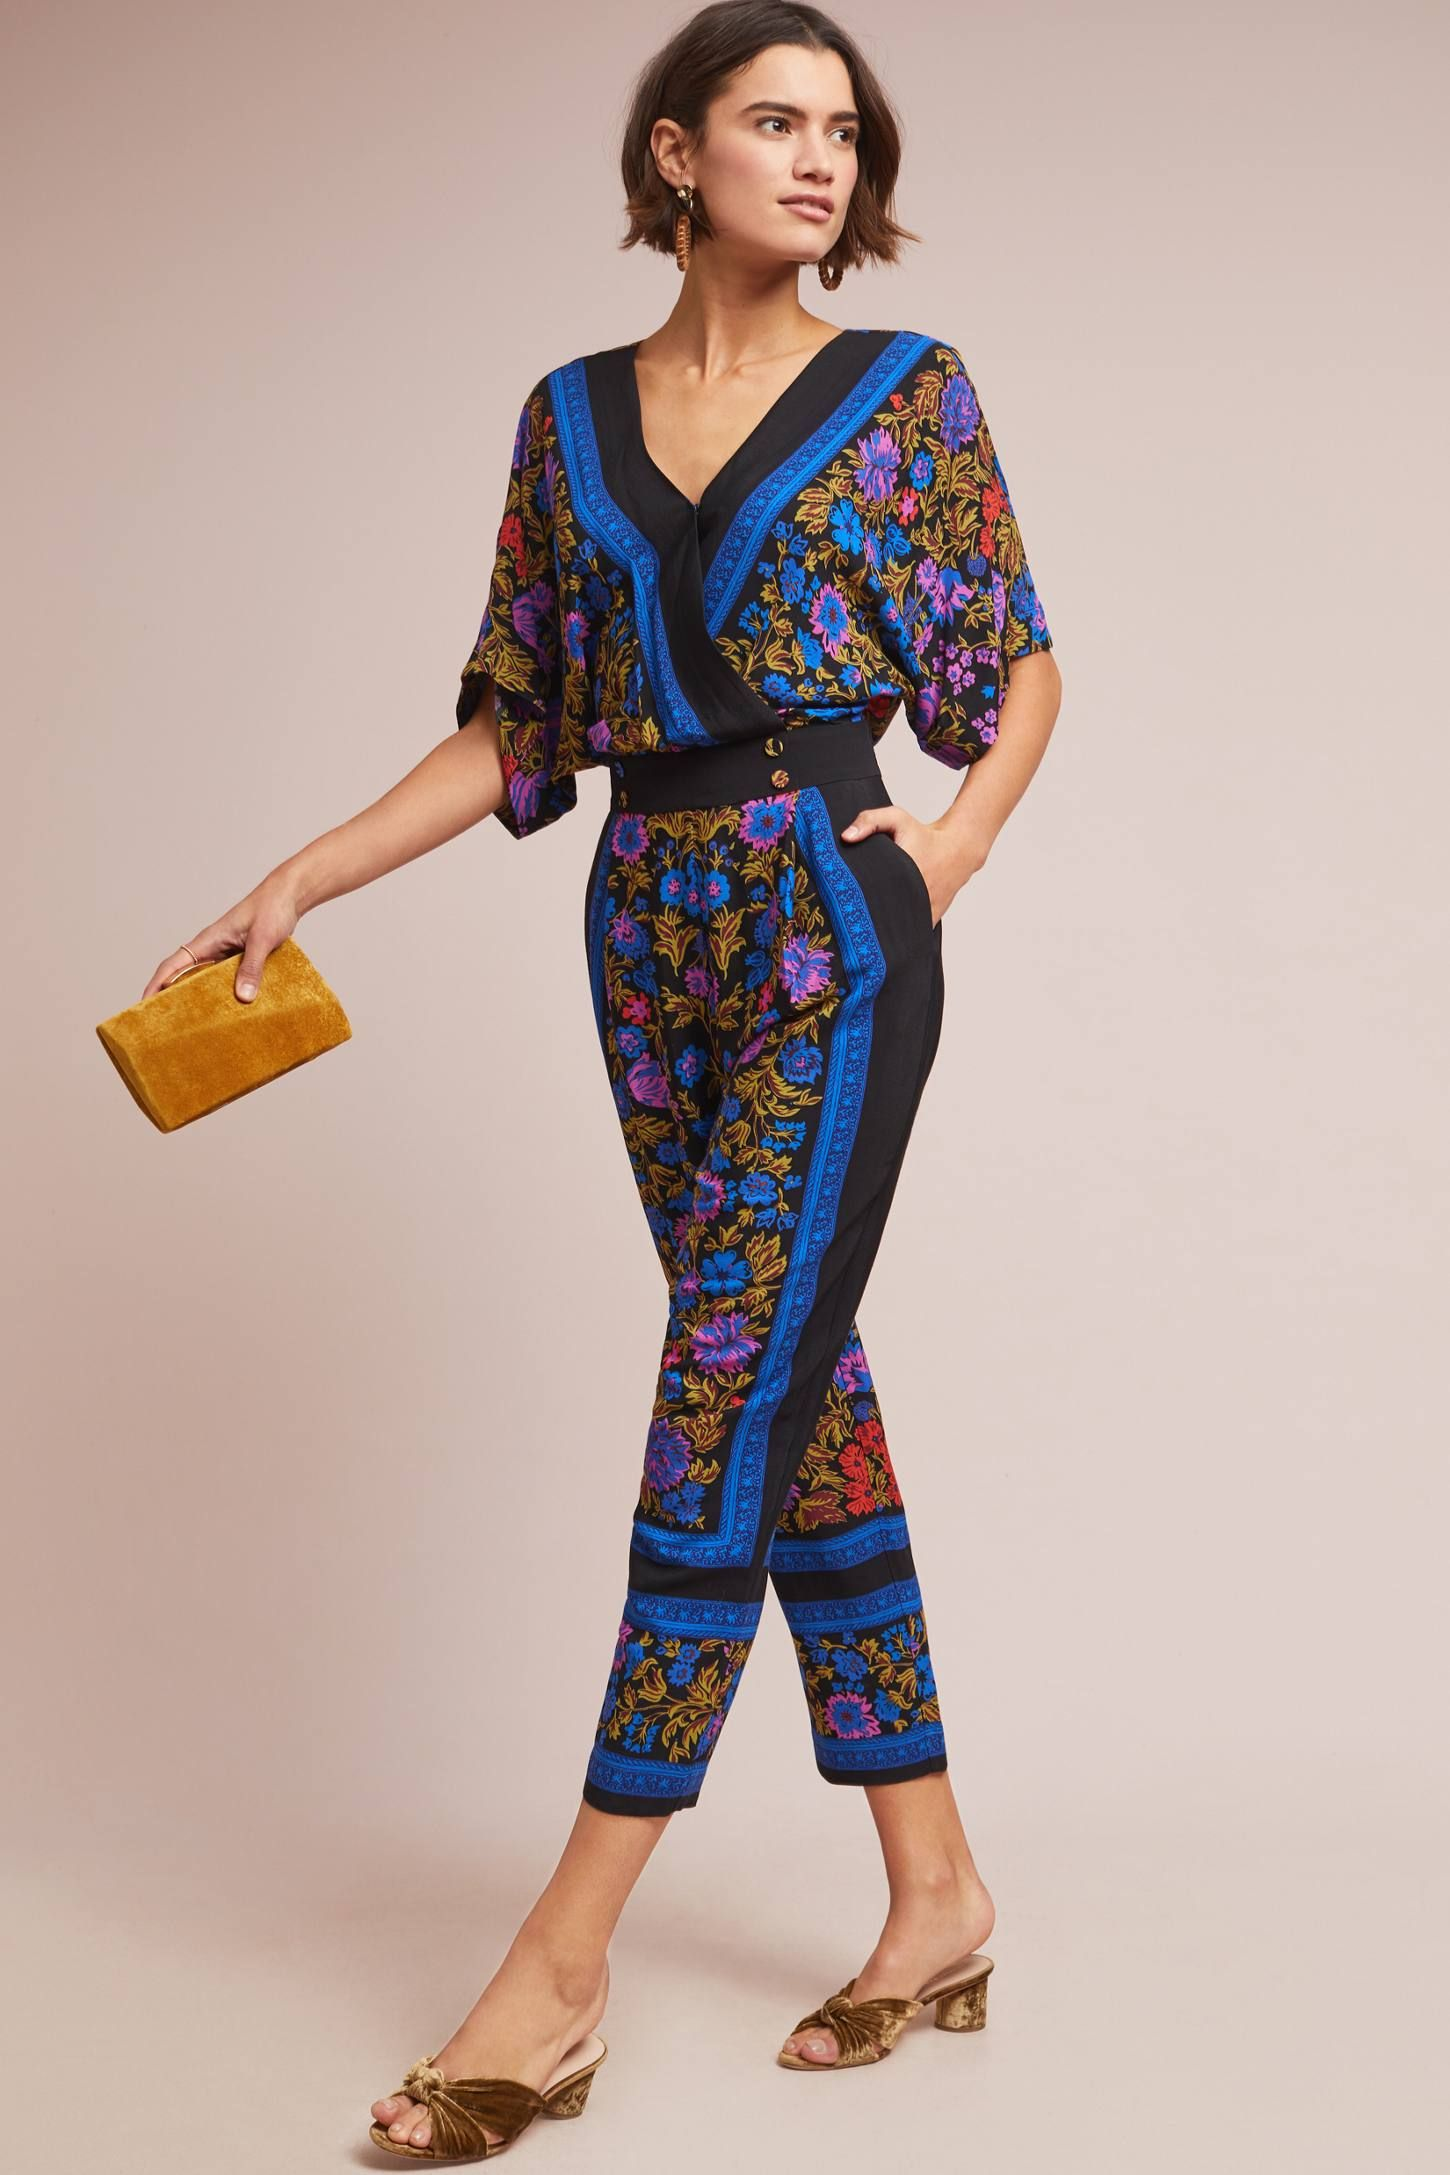 65dc0e4fca Scarf-Printed Jumpsuit in 2019 | My Style | Printed jumpsuit ...